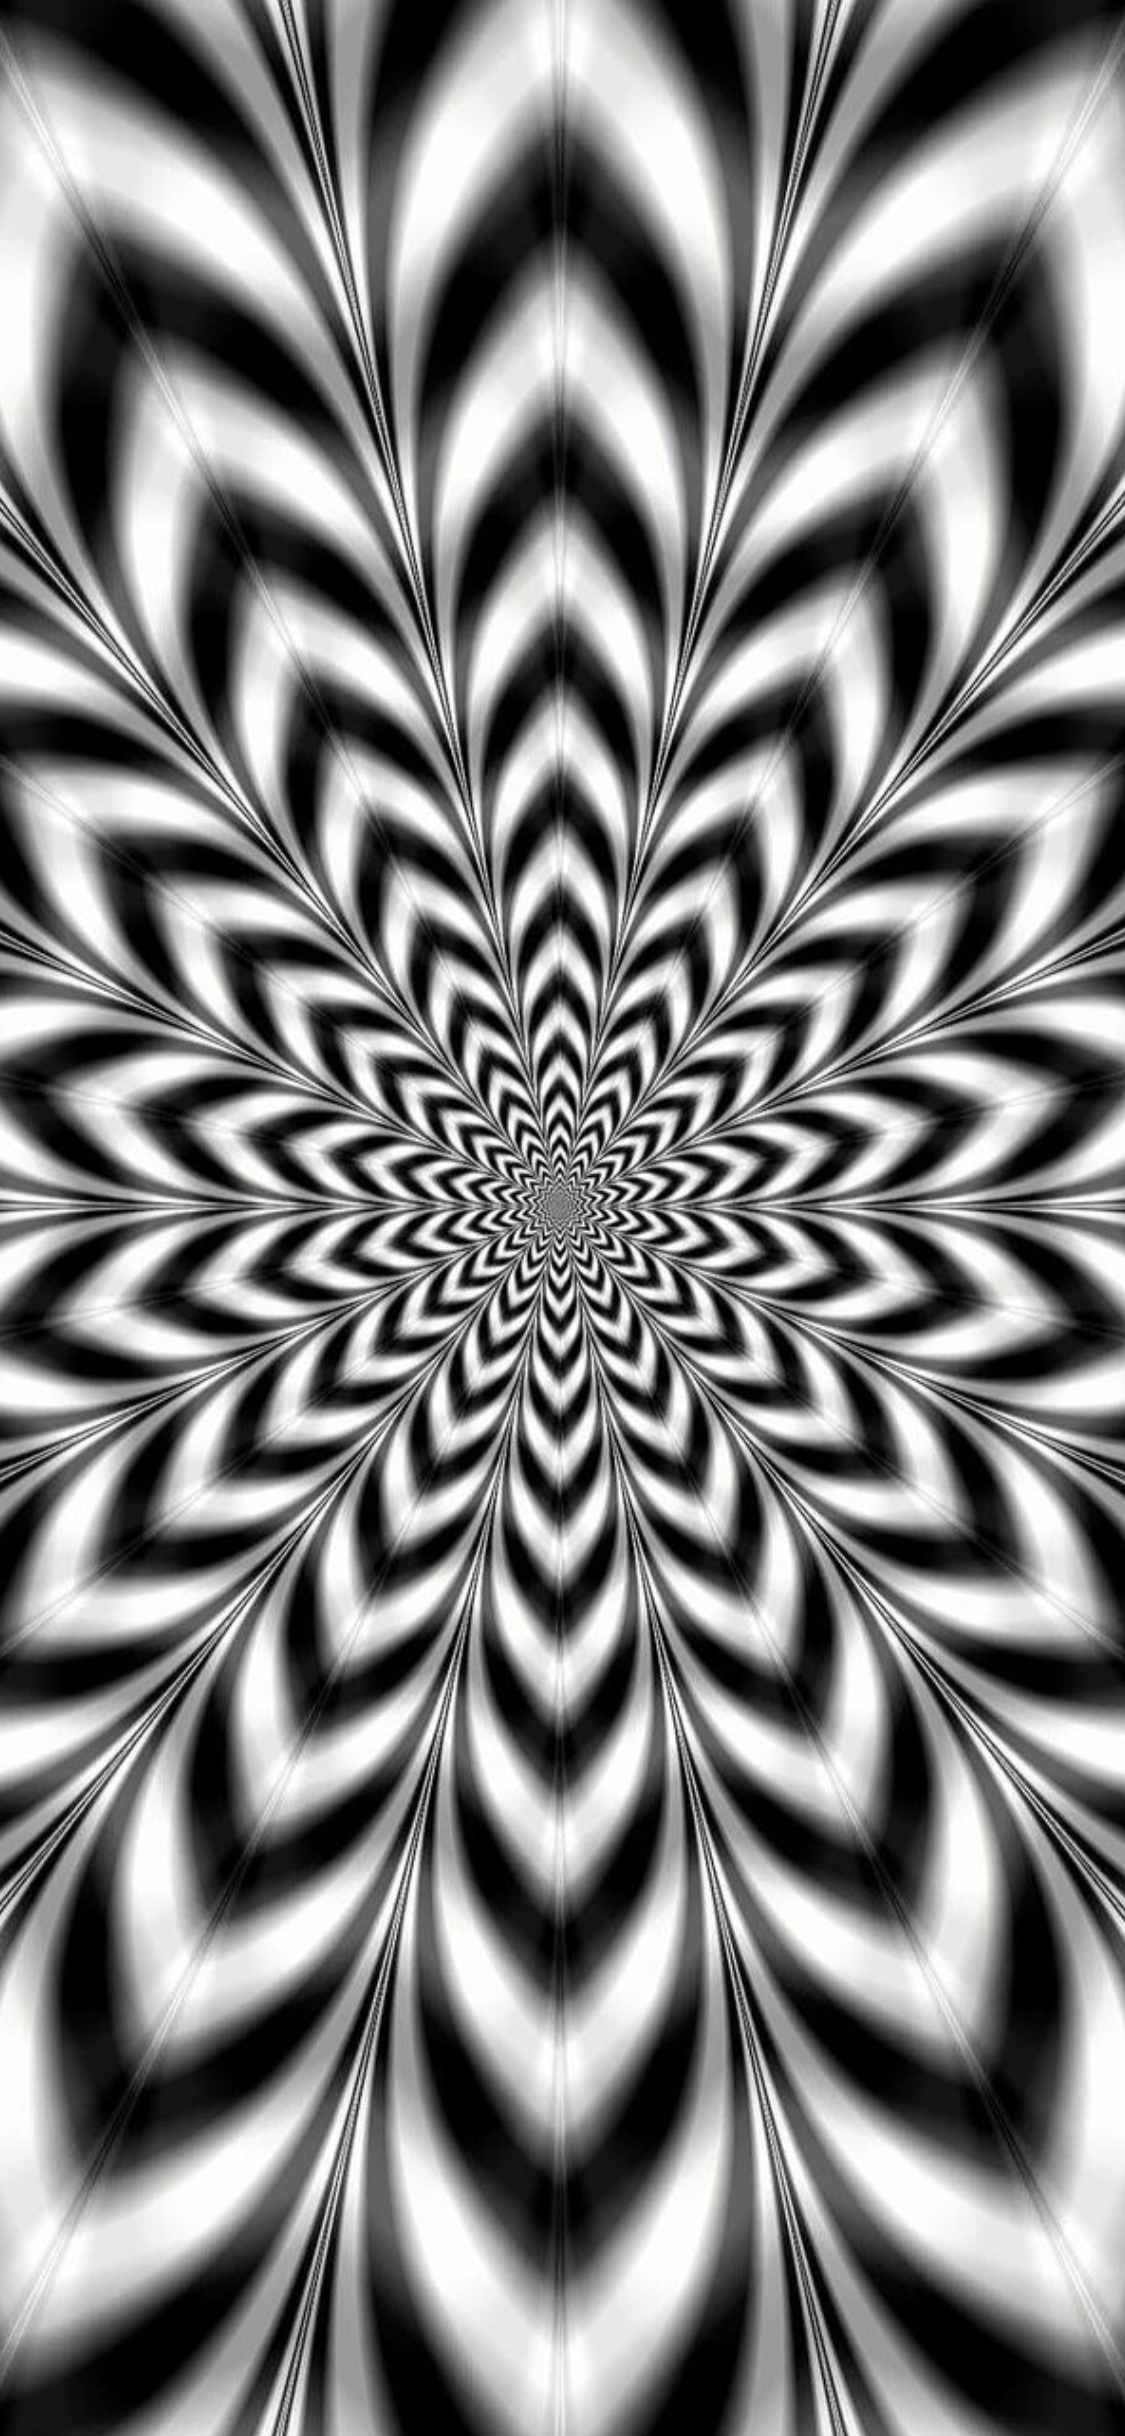 Pin By Aidan Hill On Textures Optical Illusions Art Optical Illusion Wallpaper Illusion Art